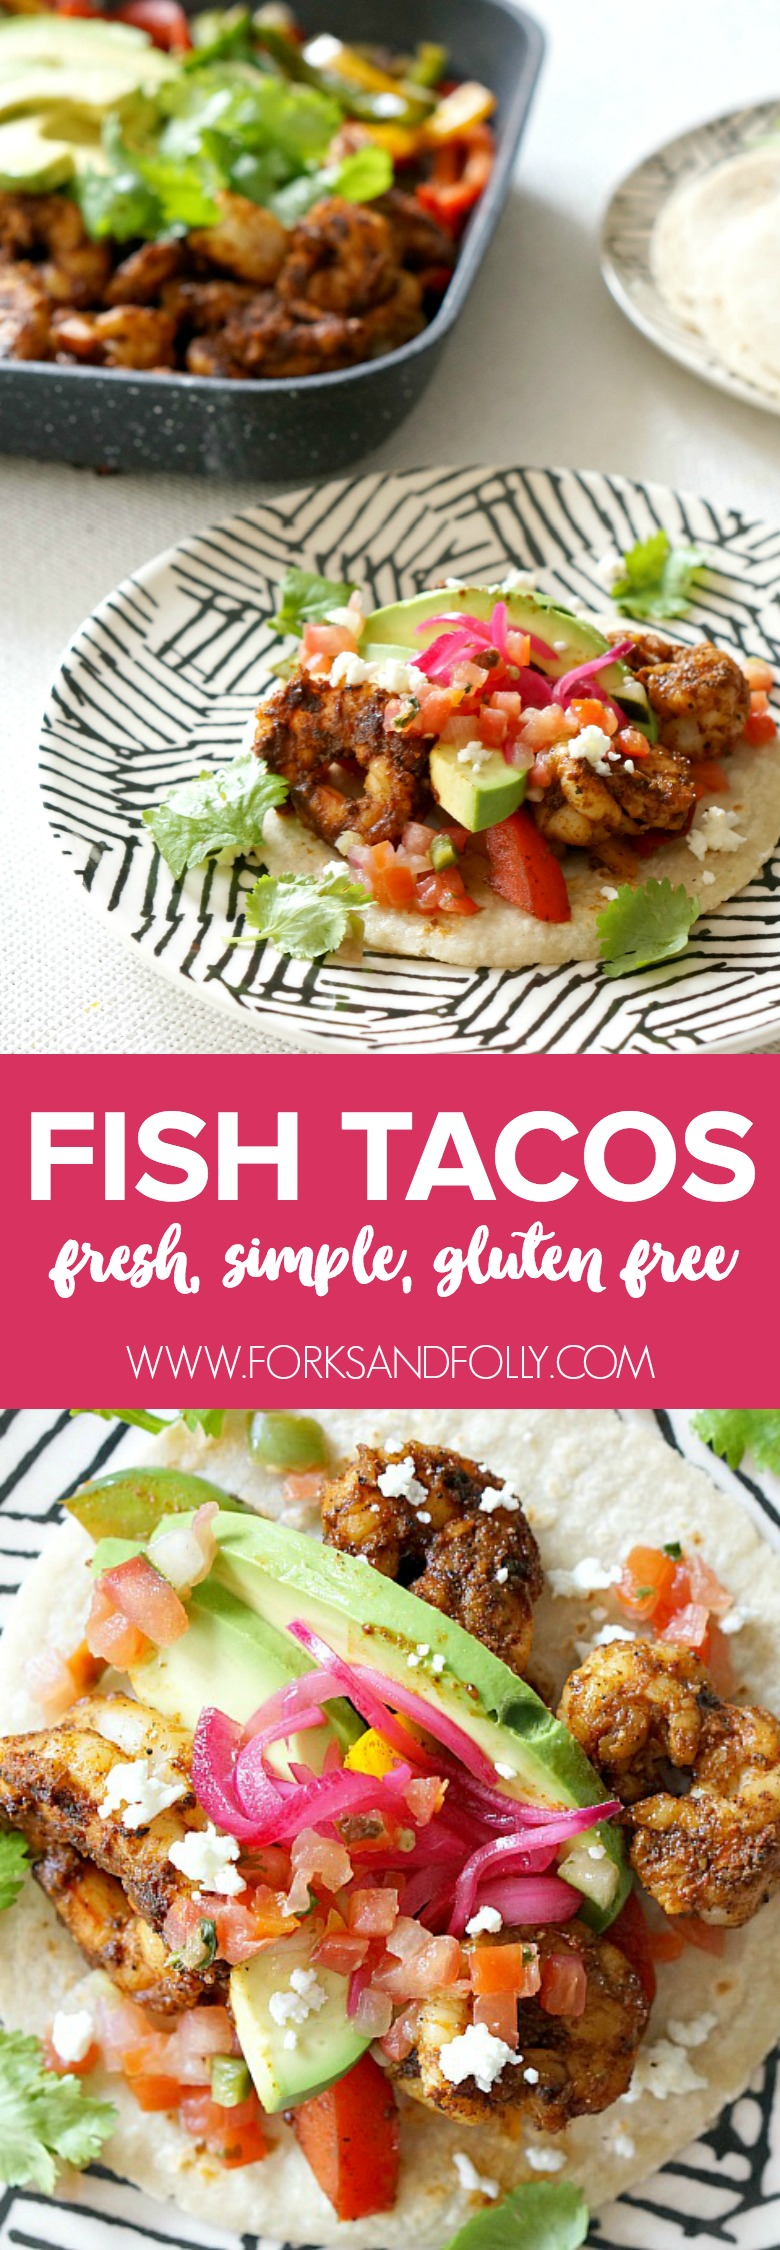 Don't limit tacos to Tuesday!  Our Blackened Fish Tacos are bursting with flavor and color.  Mix and match your favorite seafood and veggies to adapt the recipe to your tastes for any night of the week.